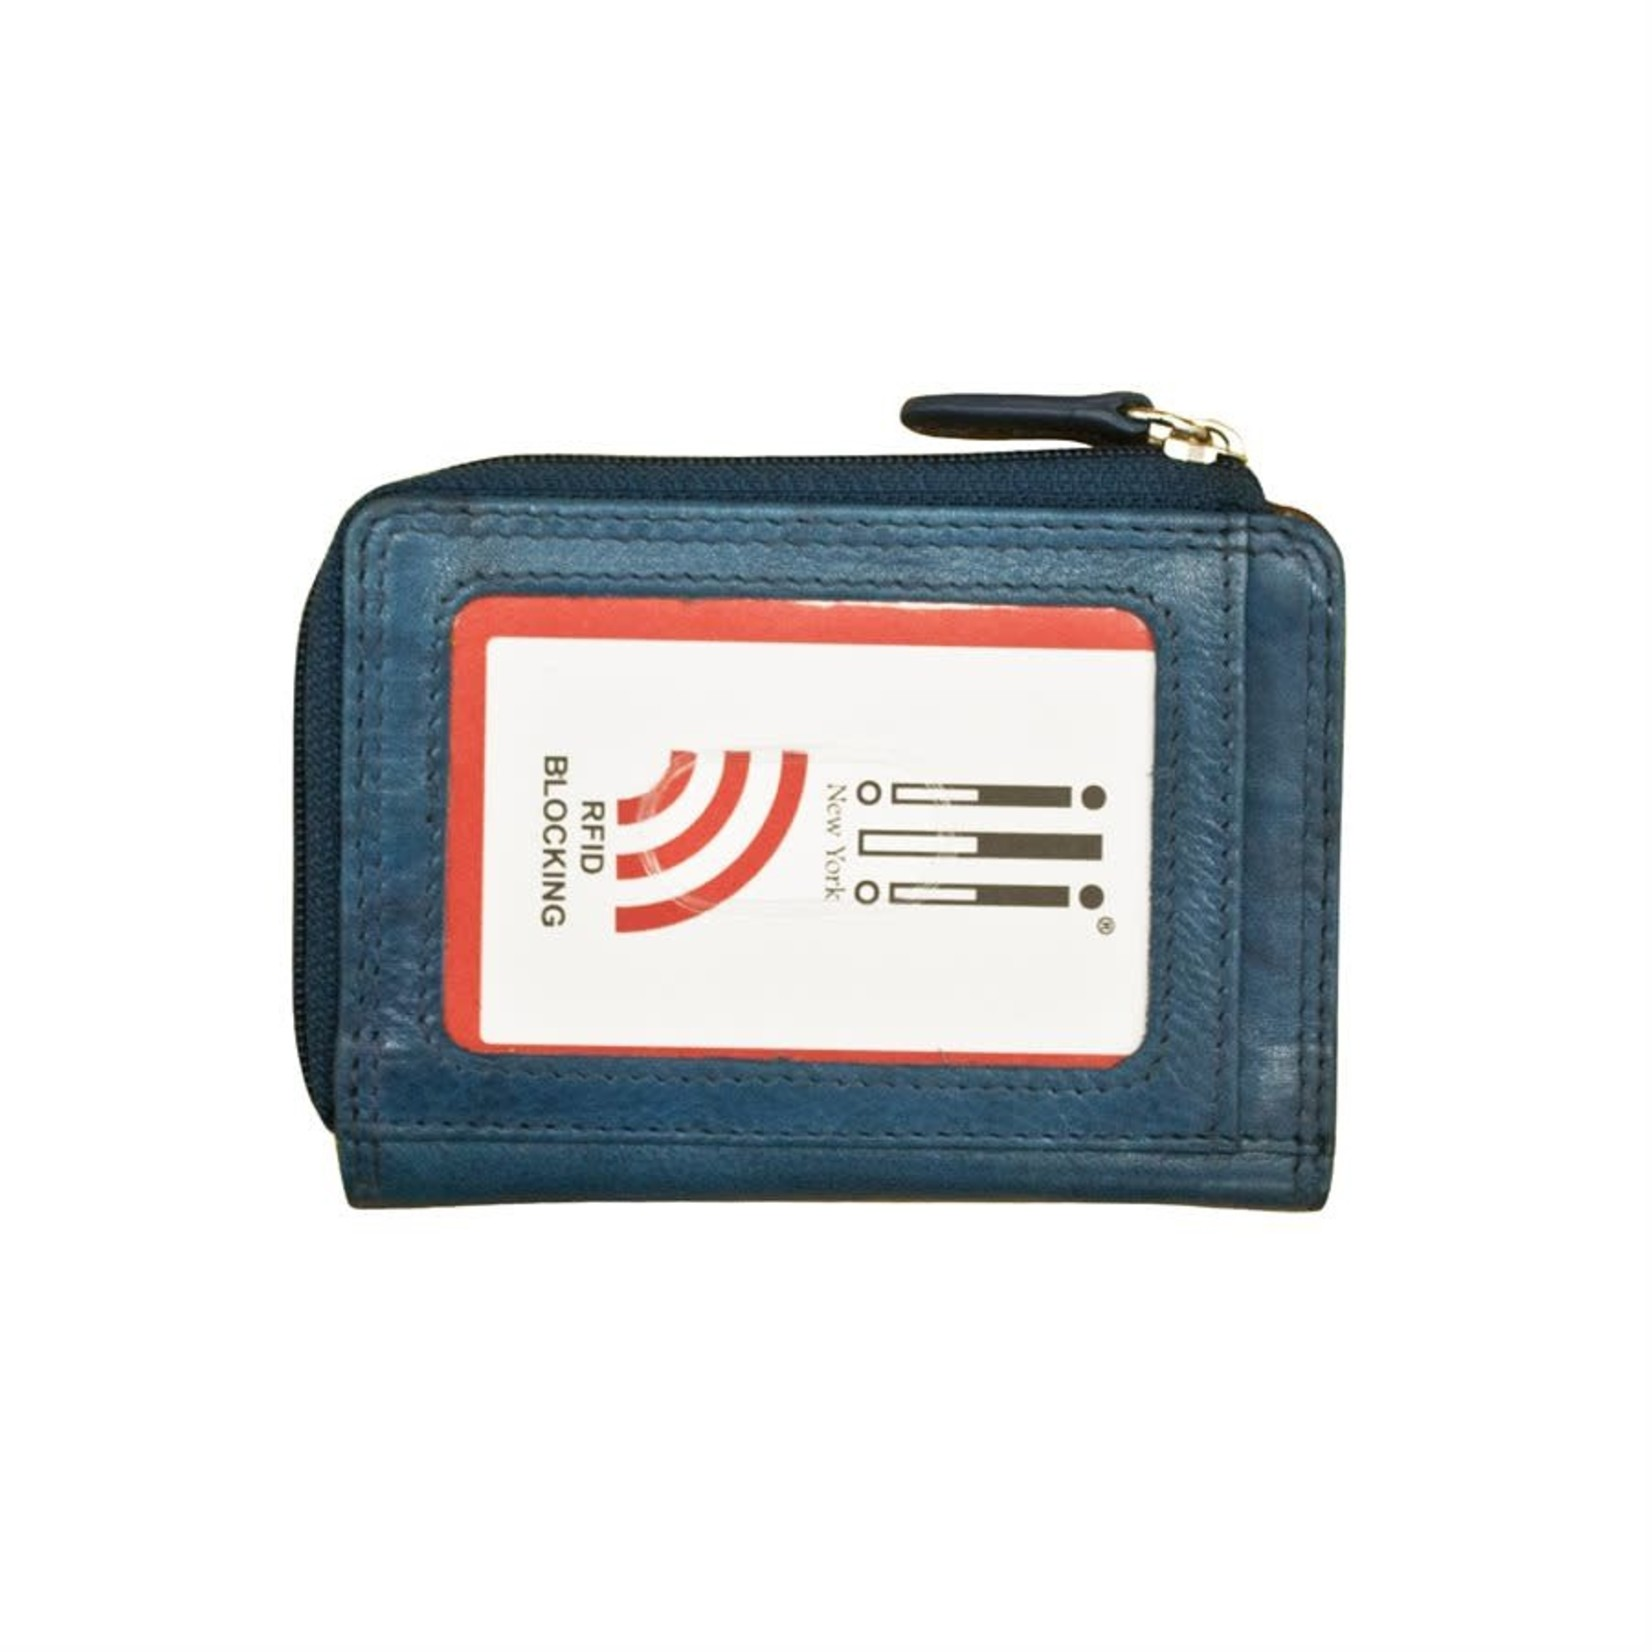 Leather Handbags and Accessories 7411 Jeans Blue - RFID CC ID Holder